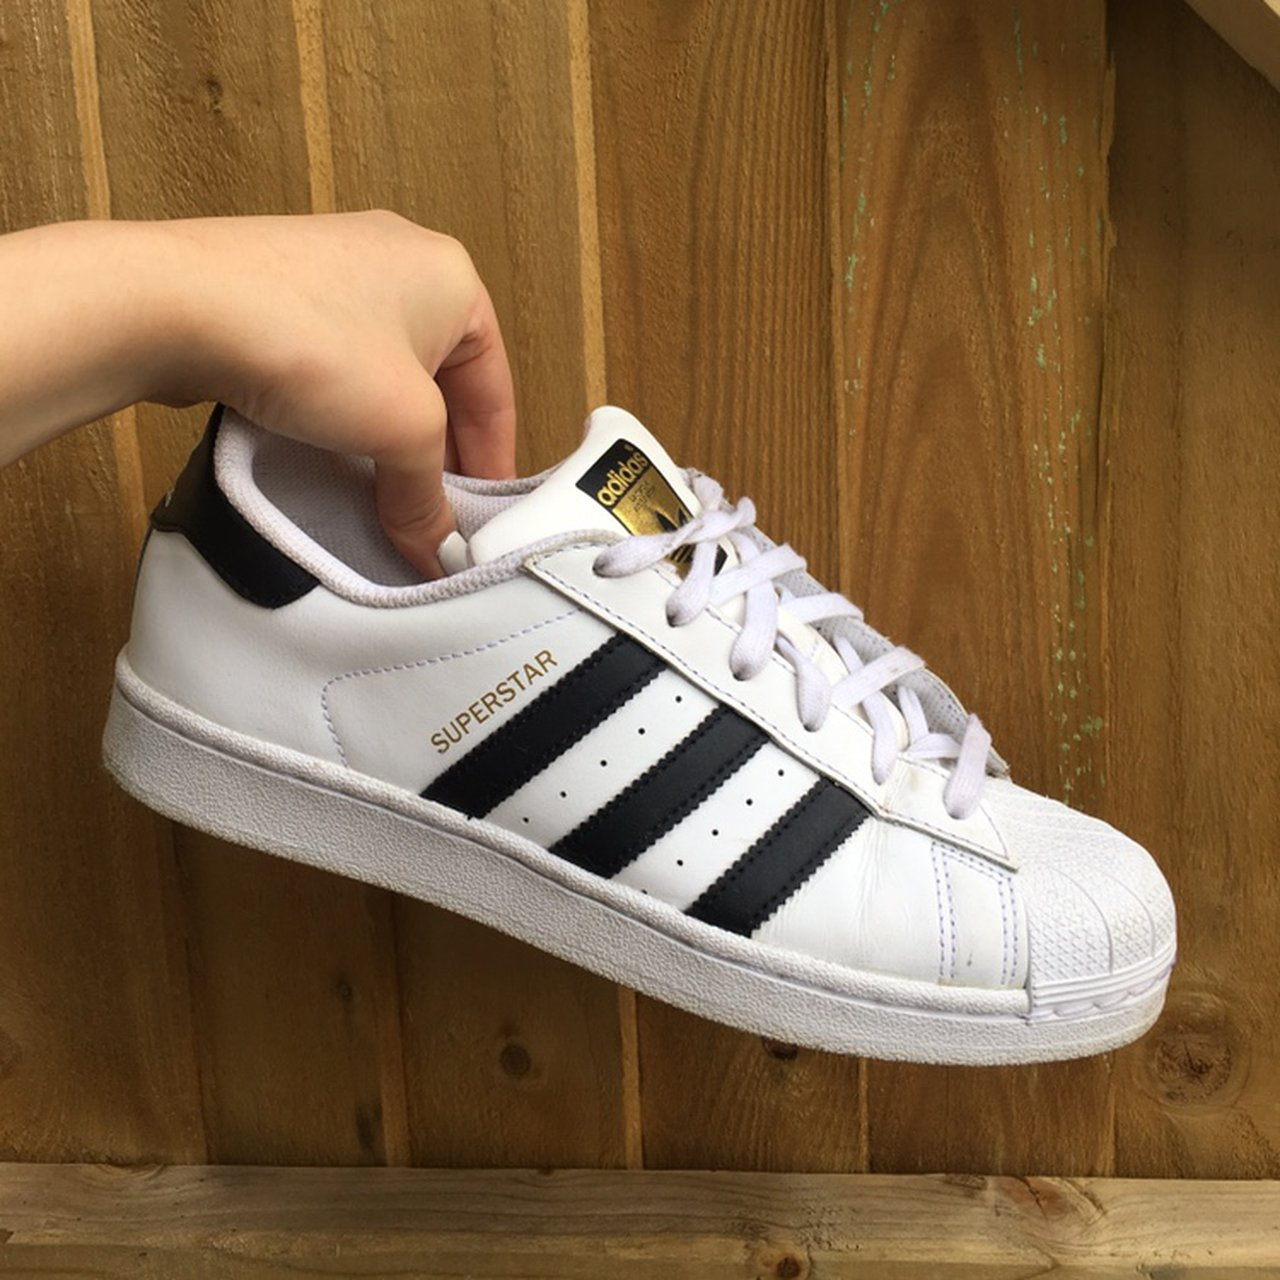 Adidas ▪️ Superstar Trainers White